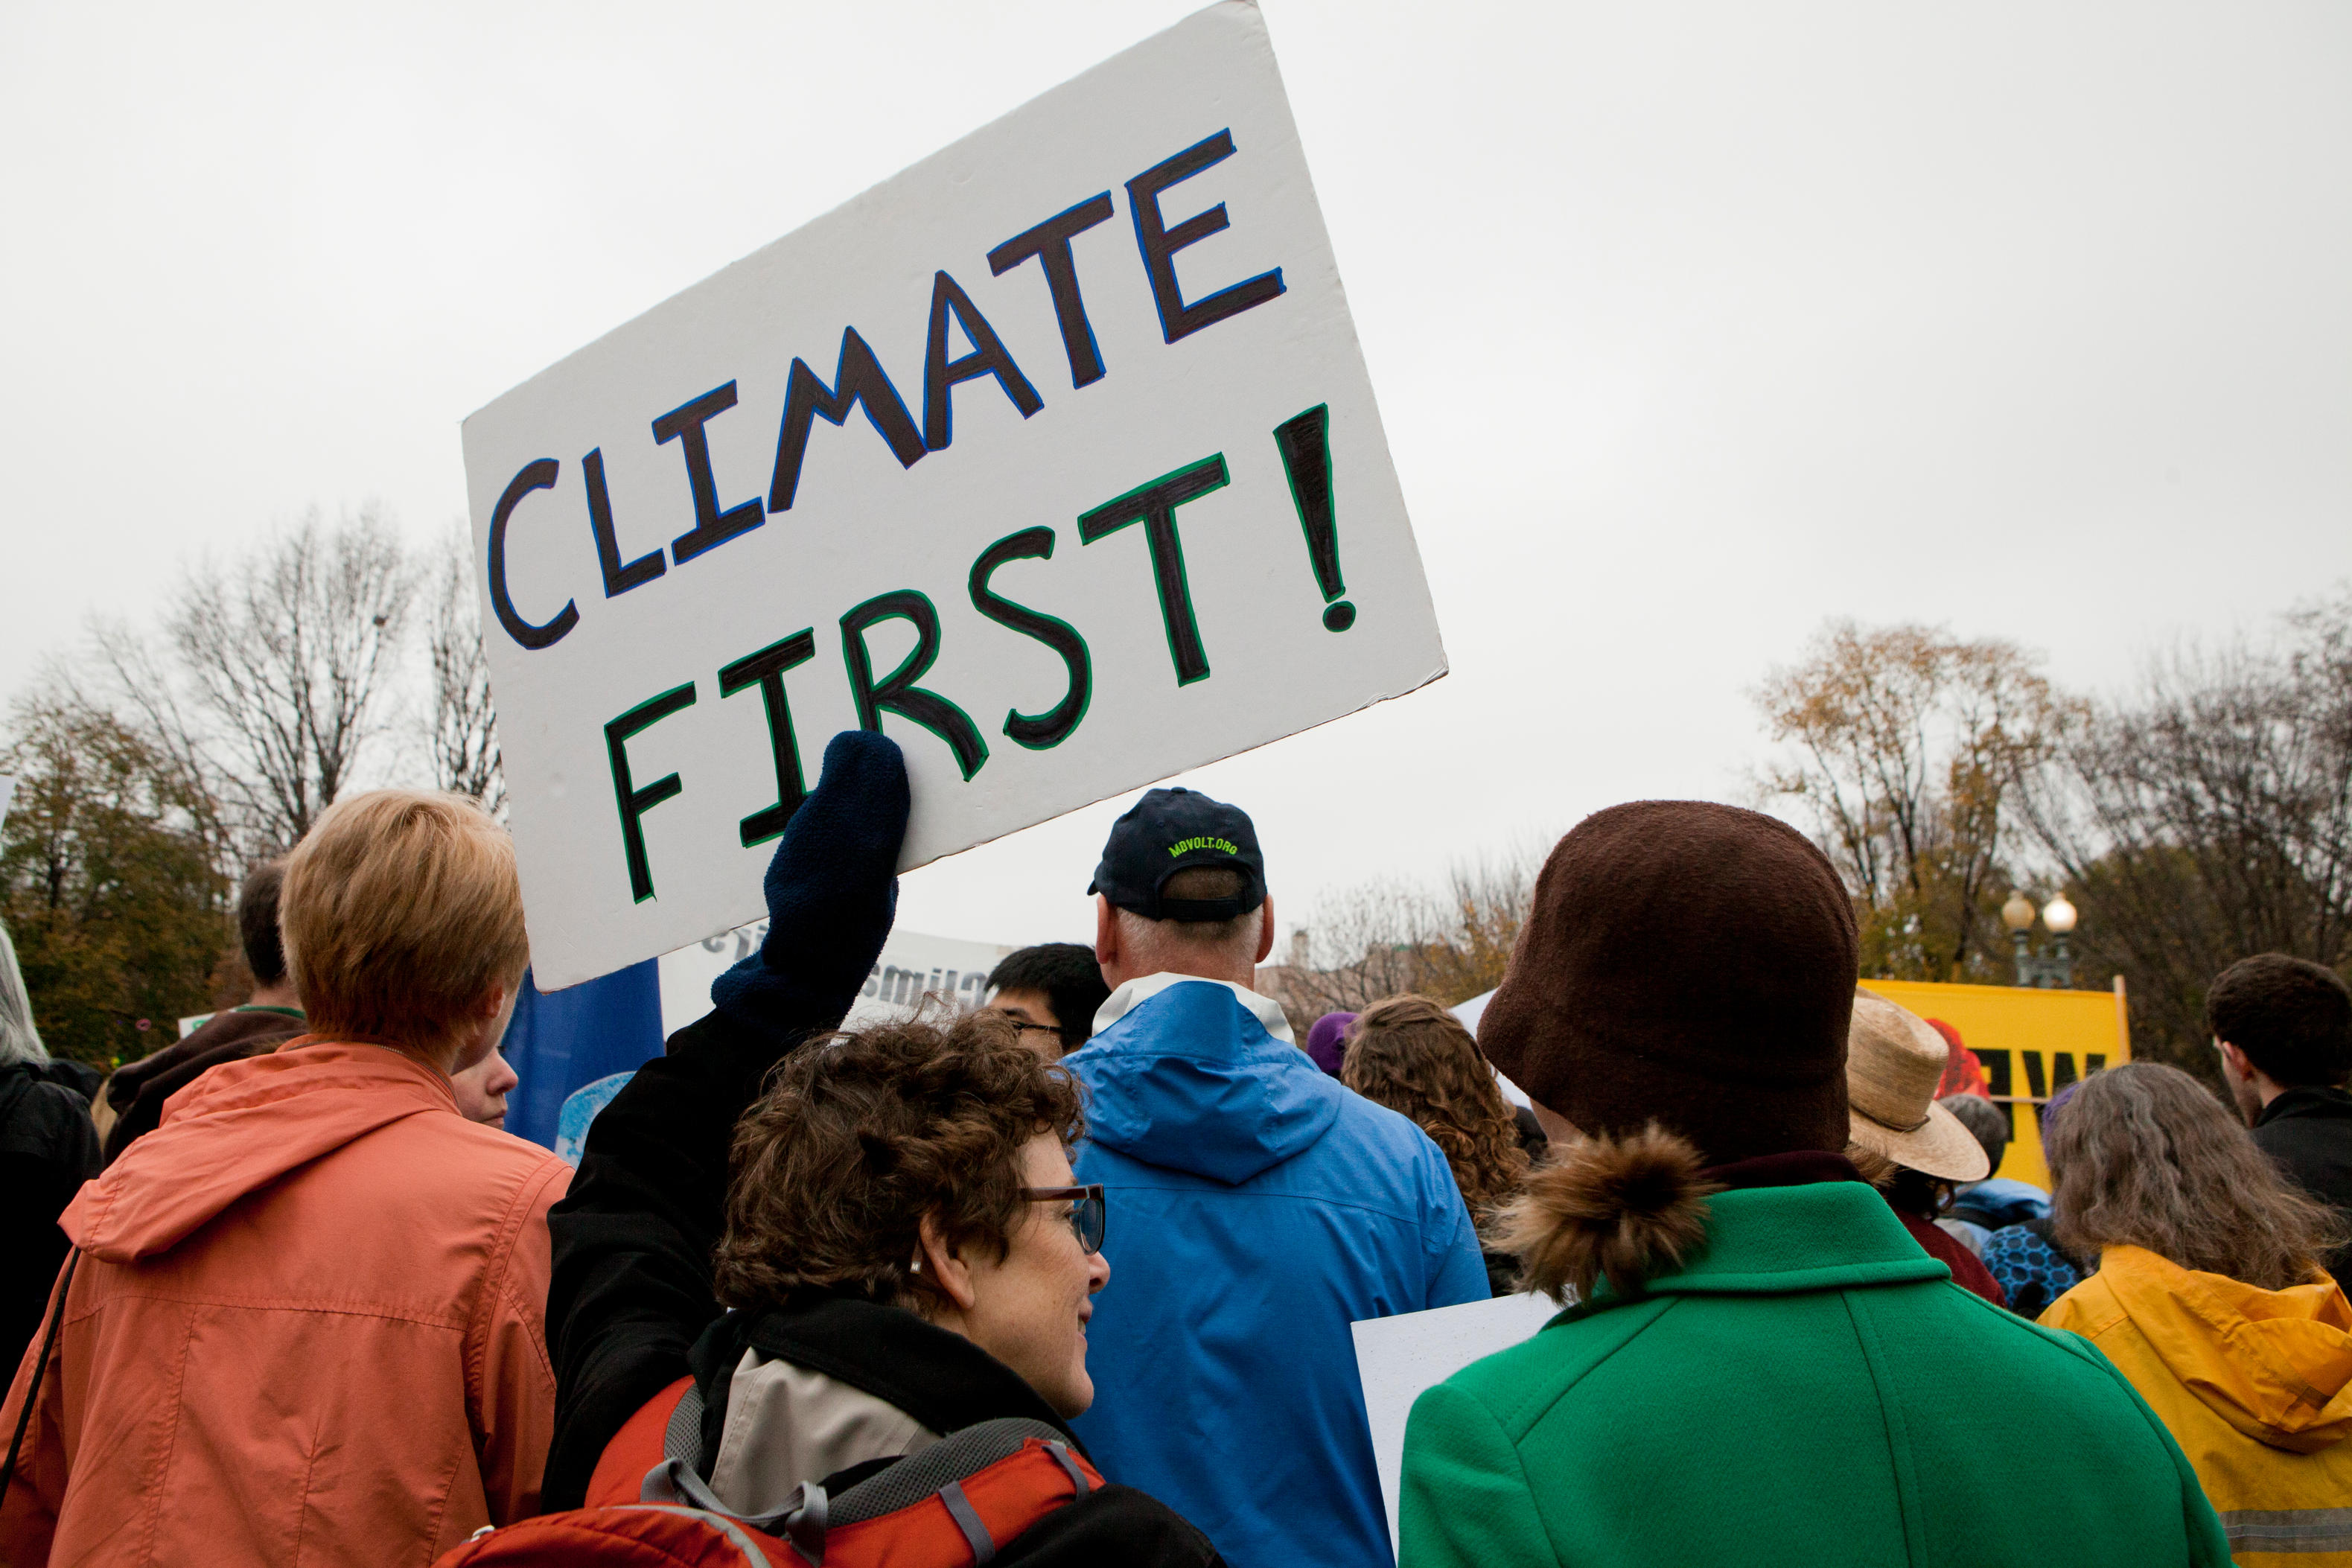 FBR9J1 November 21, 2015, Washington, DC USA: Environmental activists protest in front of the White House